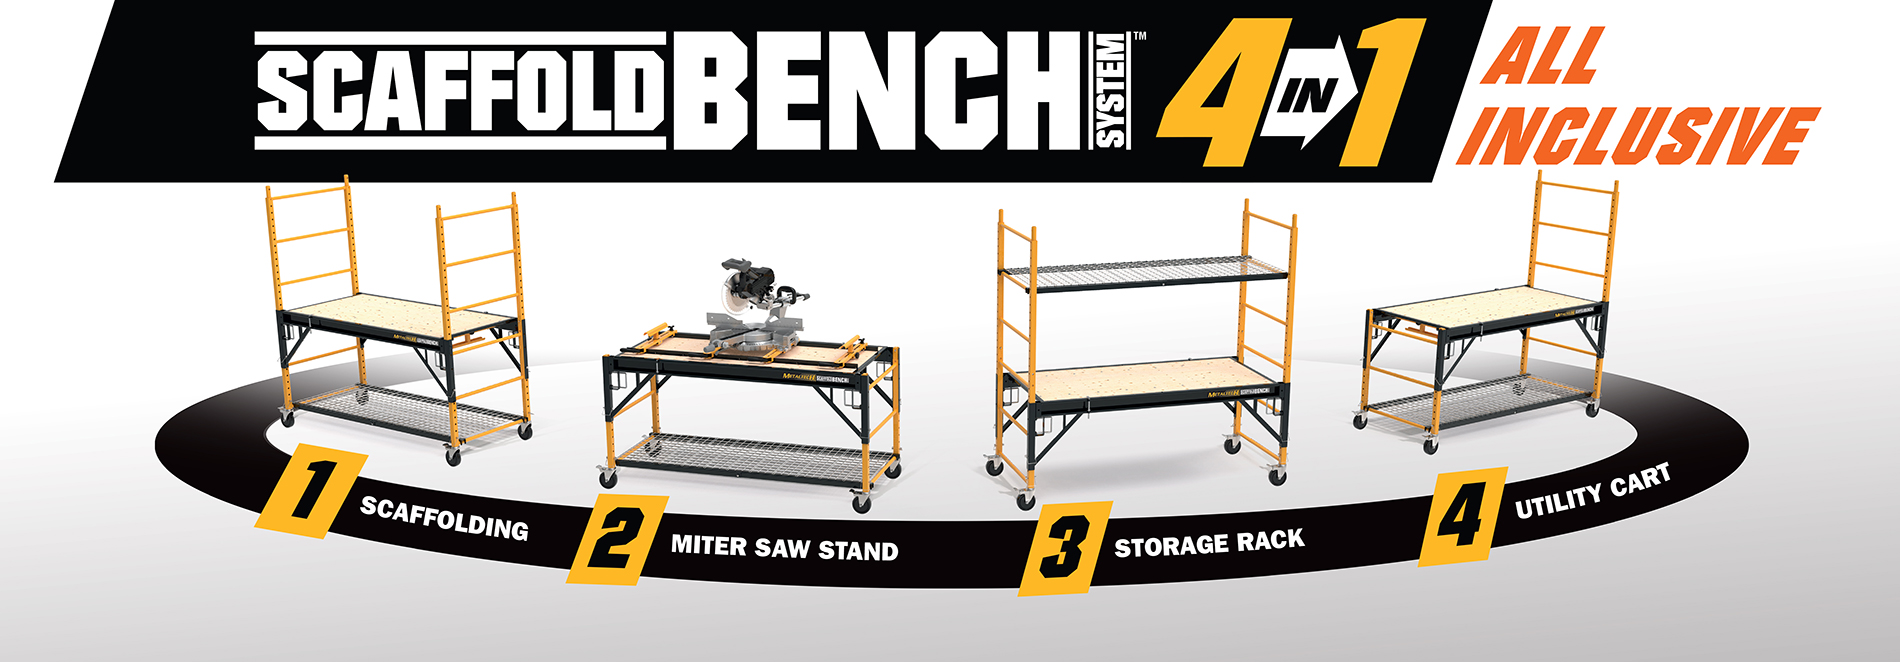 The New Metaltech ScaffoldBench Is A Uniqu...